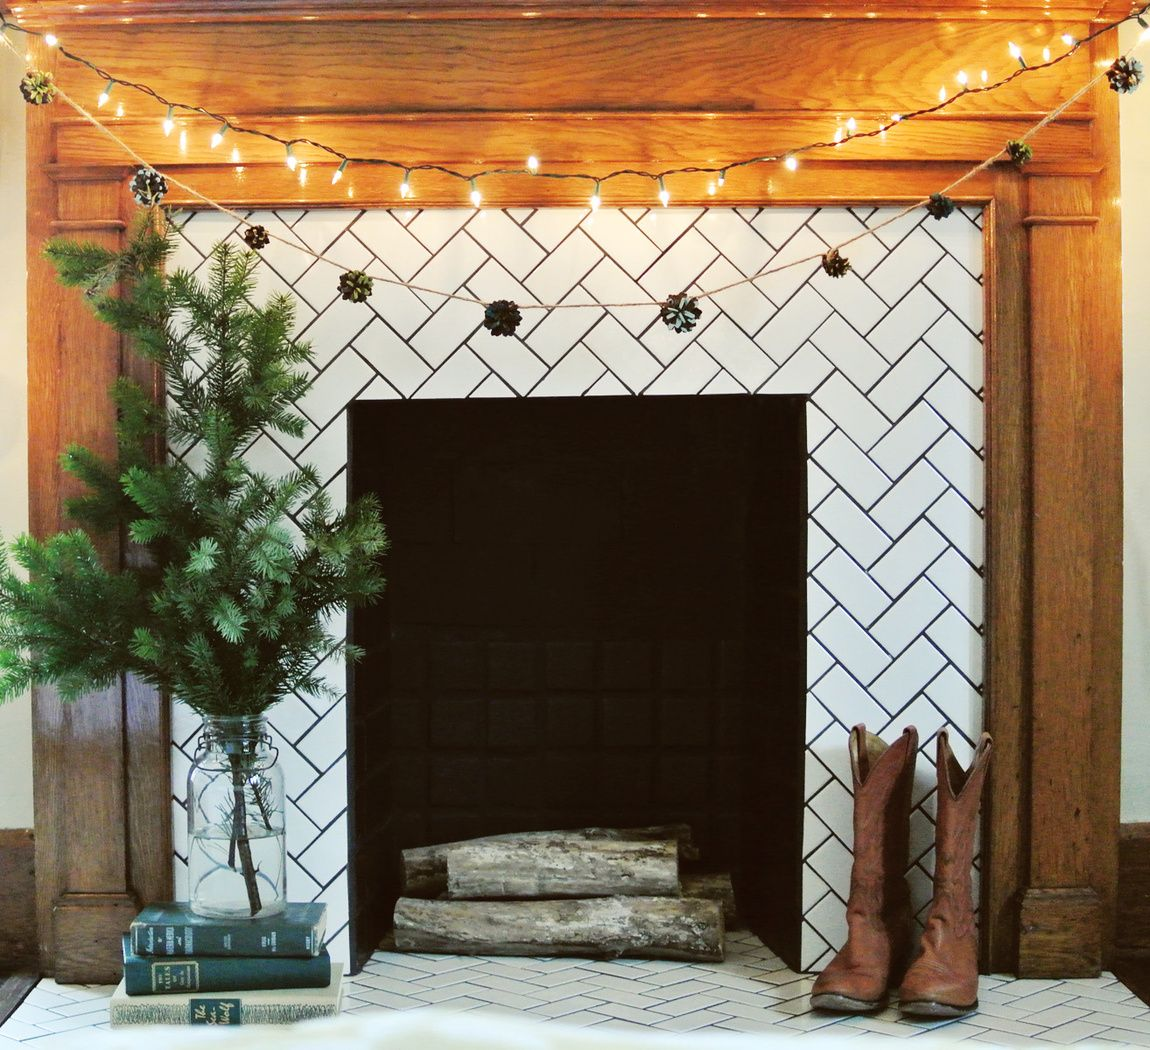 Subway Tile Fireplace Surround And Mantel Diy For Pinecone Garland